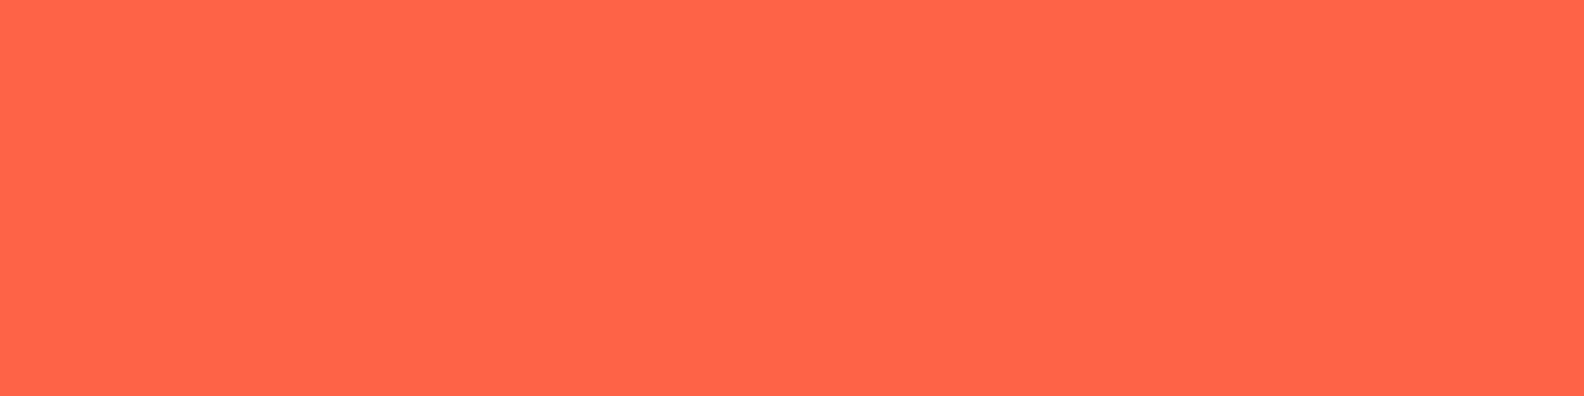 1584x396 Tomato Solid Color Background